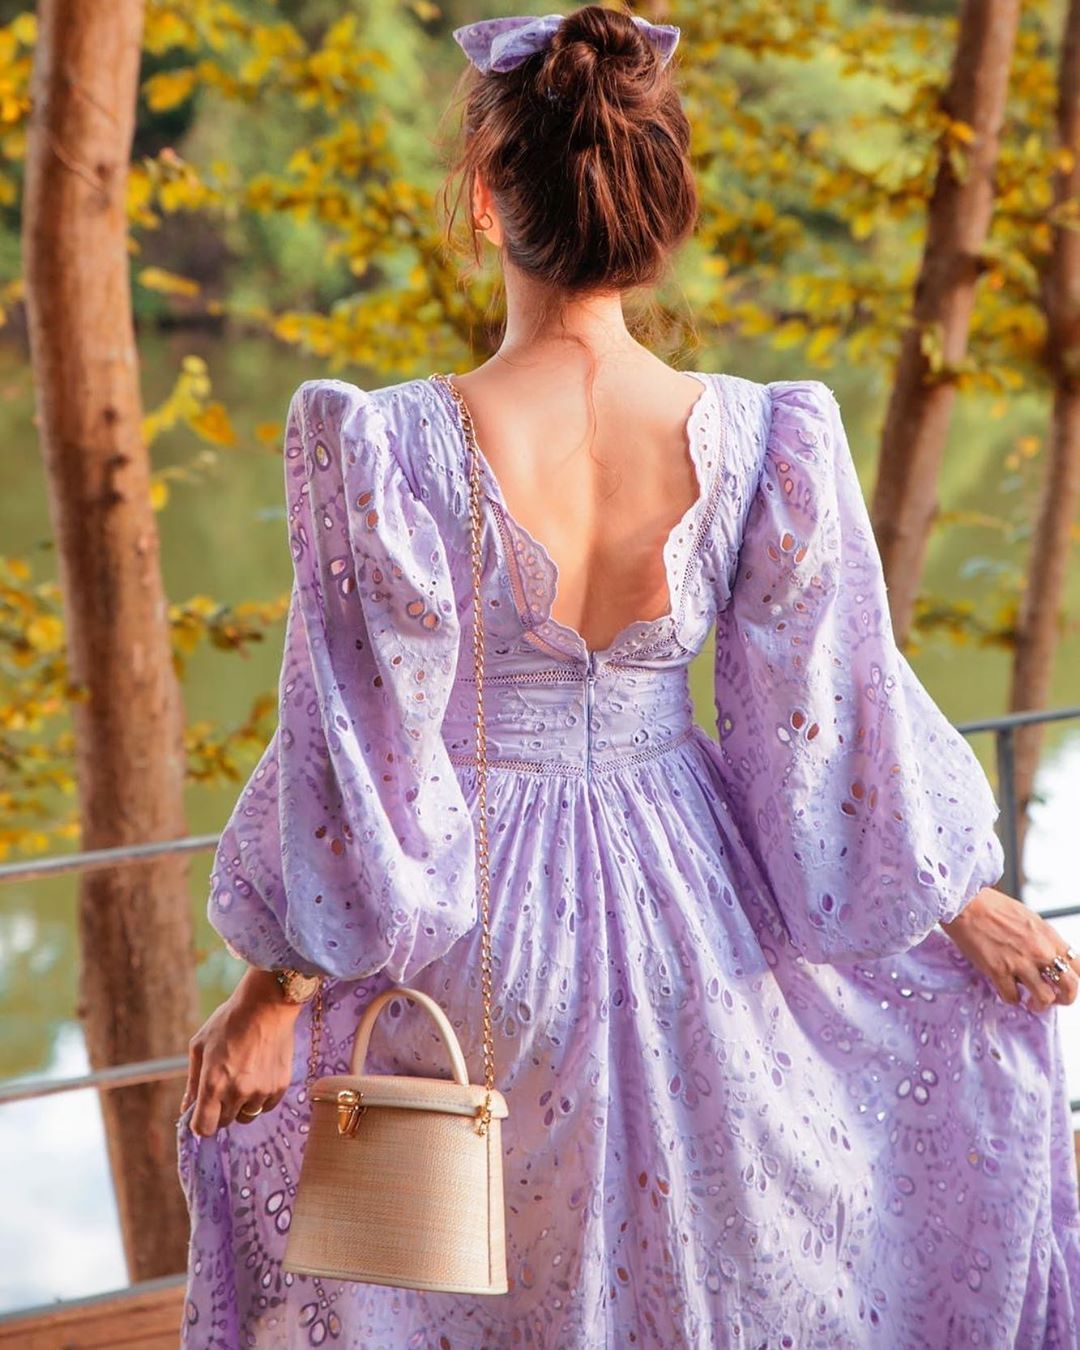 Sagaza On Instagram Garden Violet Invites You Dreamy Colors And Sophisticated Shapes Sagaza Fashion Aesthetic Clothes Dresses [ 1350 x 1080 Pixel ]